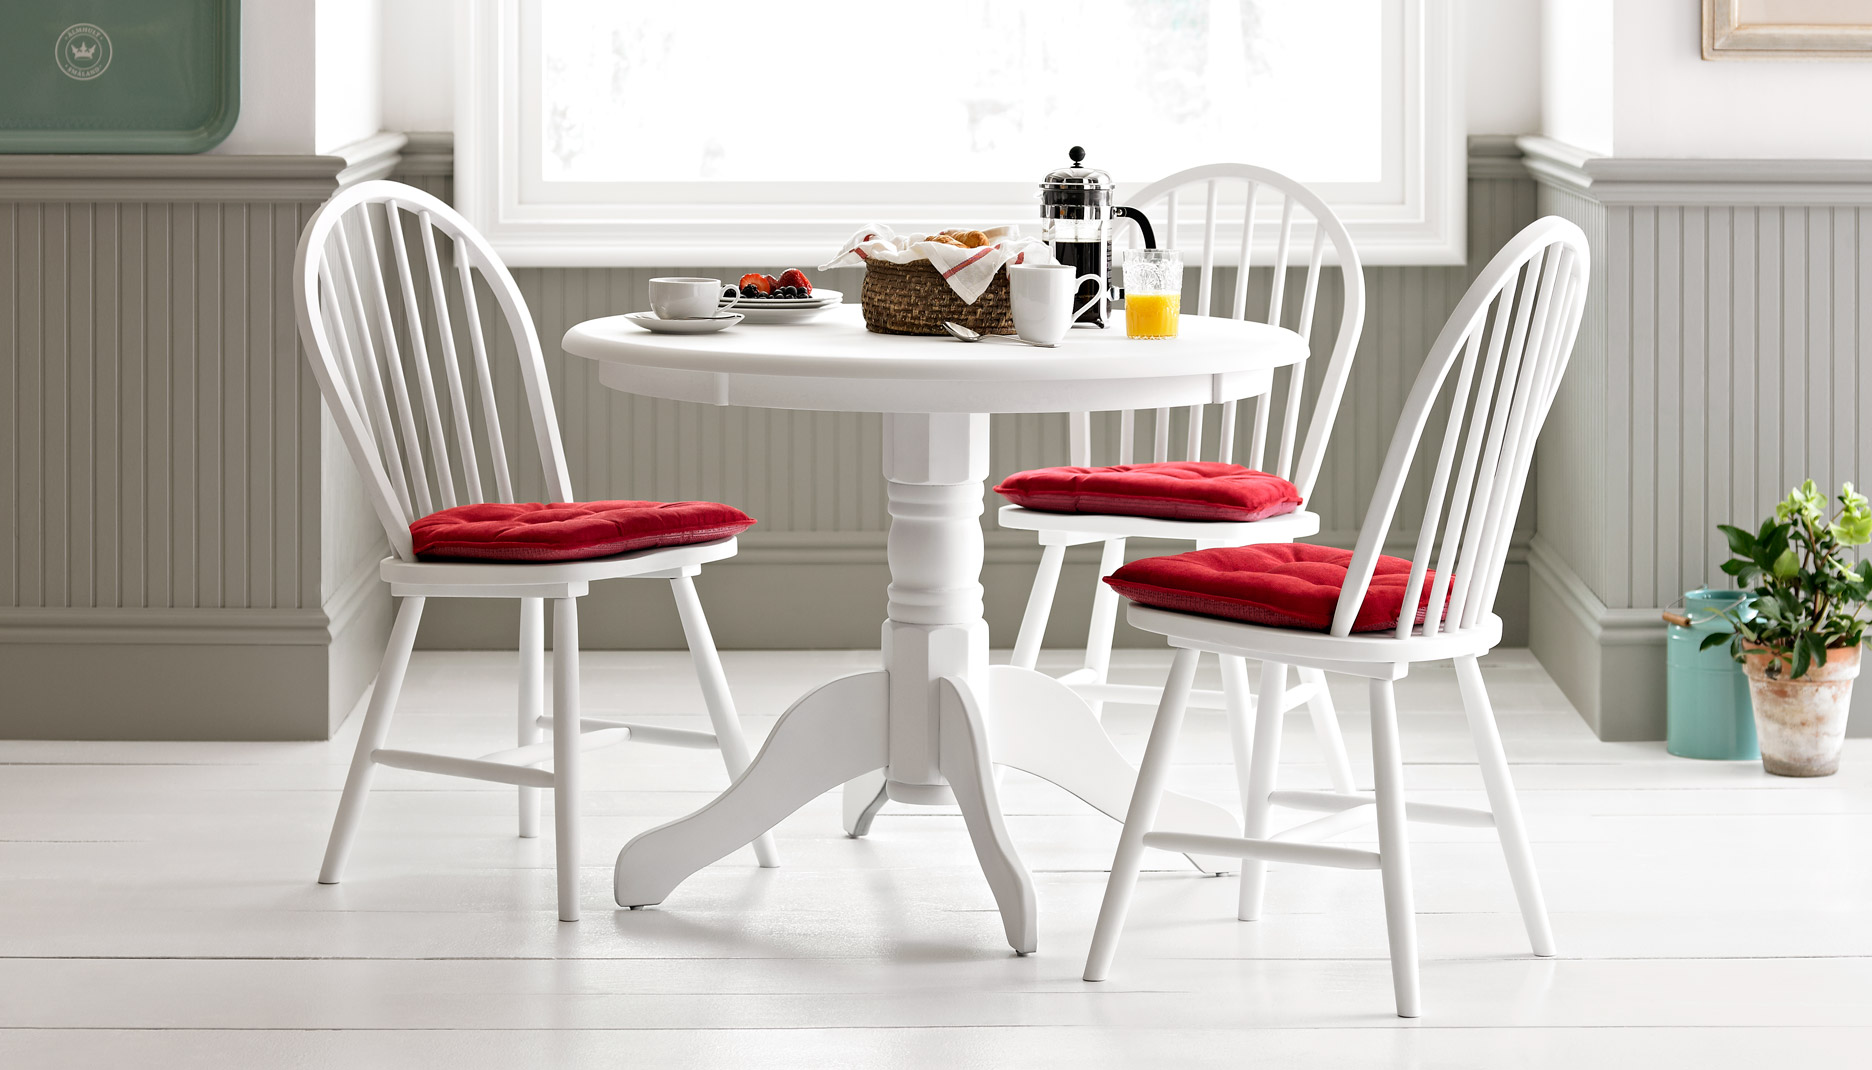 kitchen chairs white photo - 6